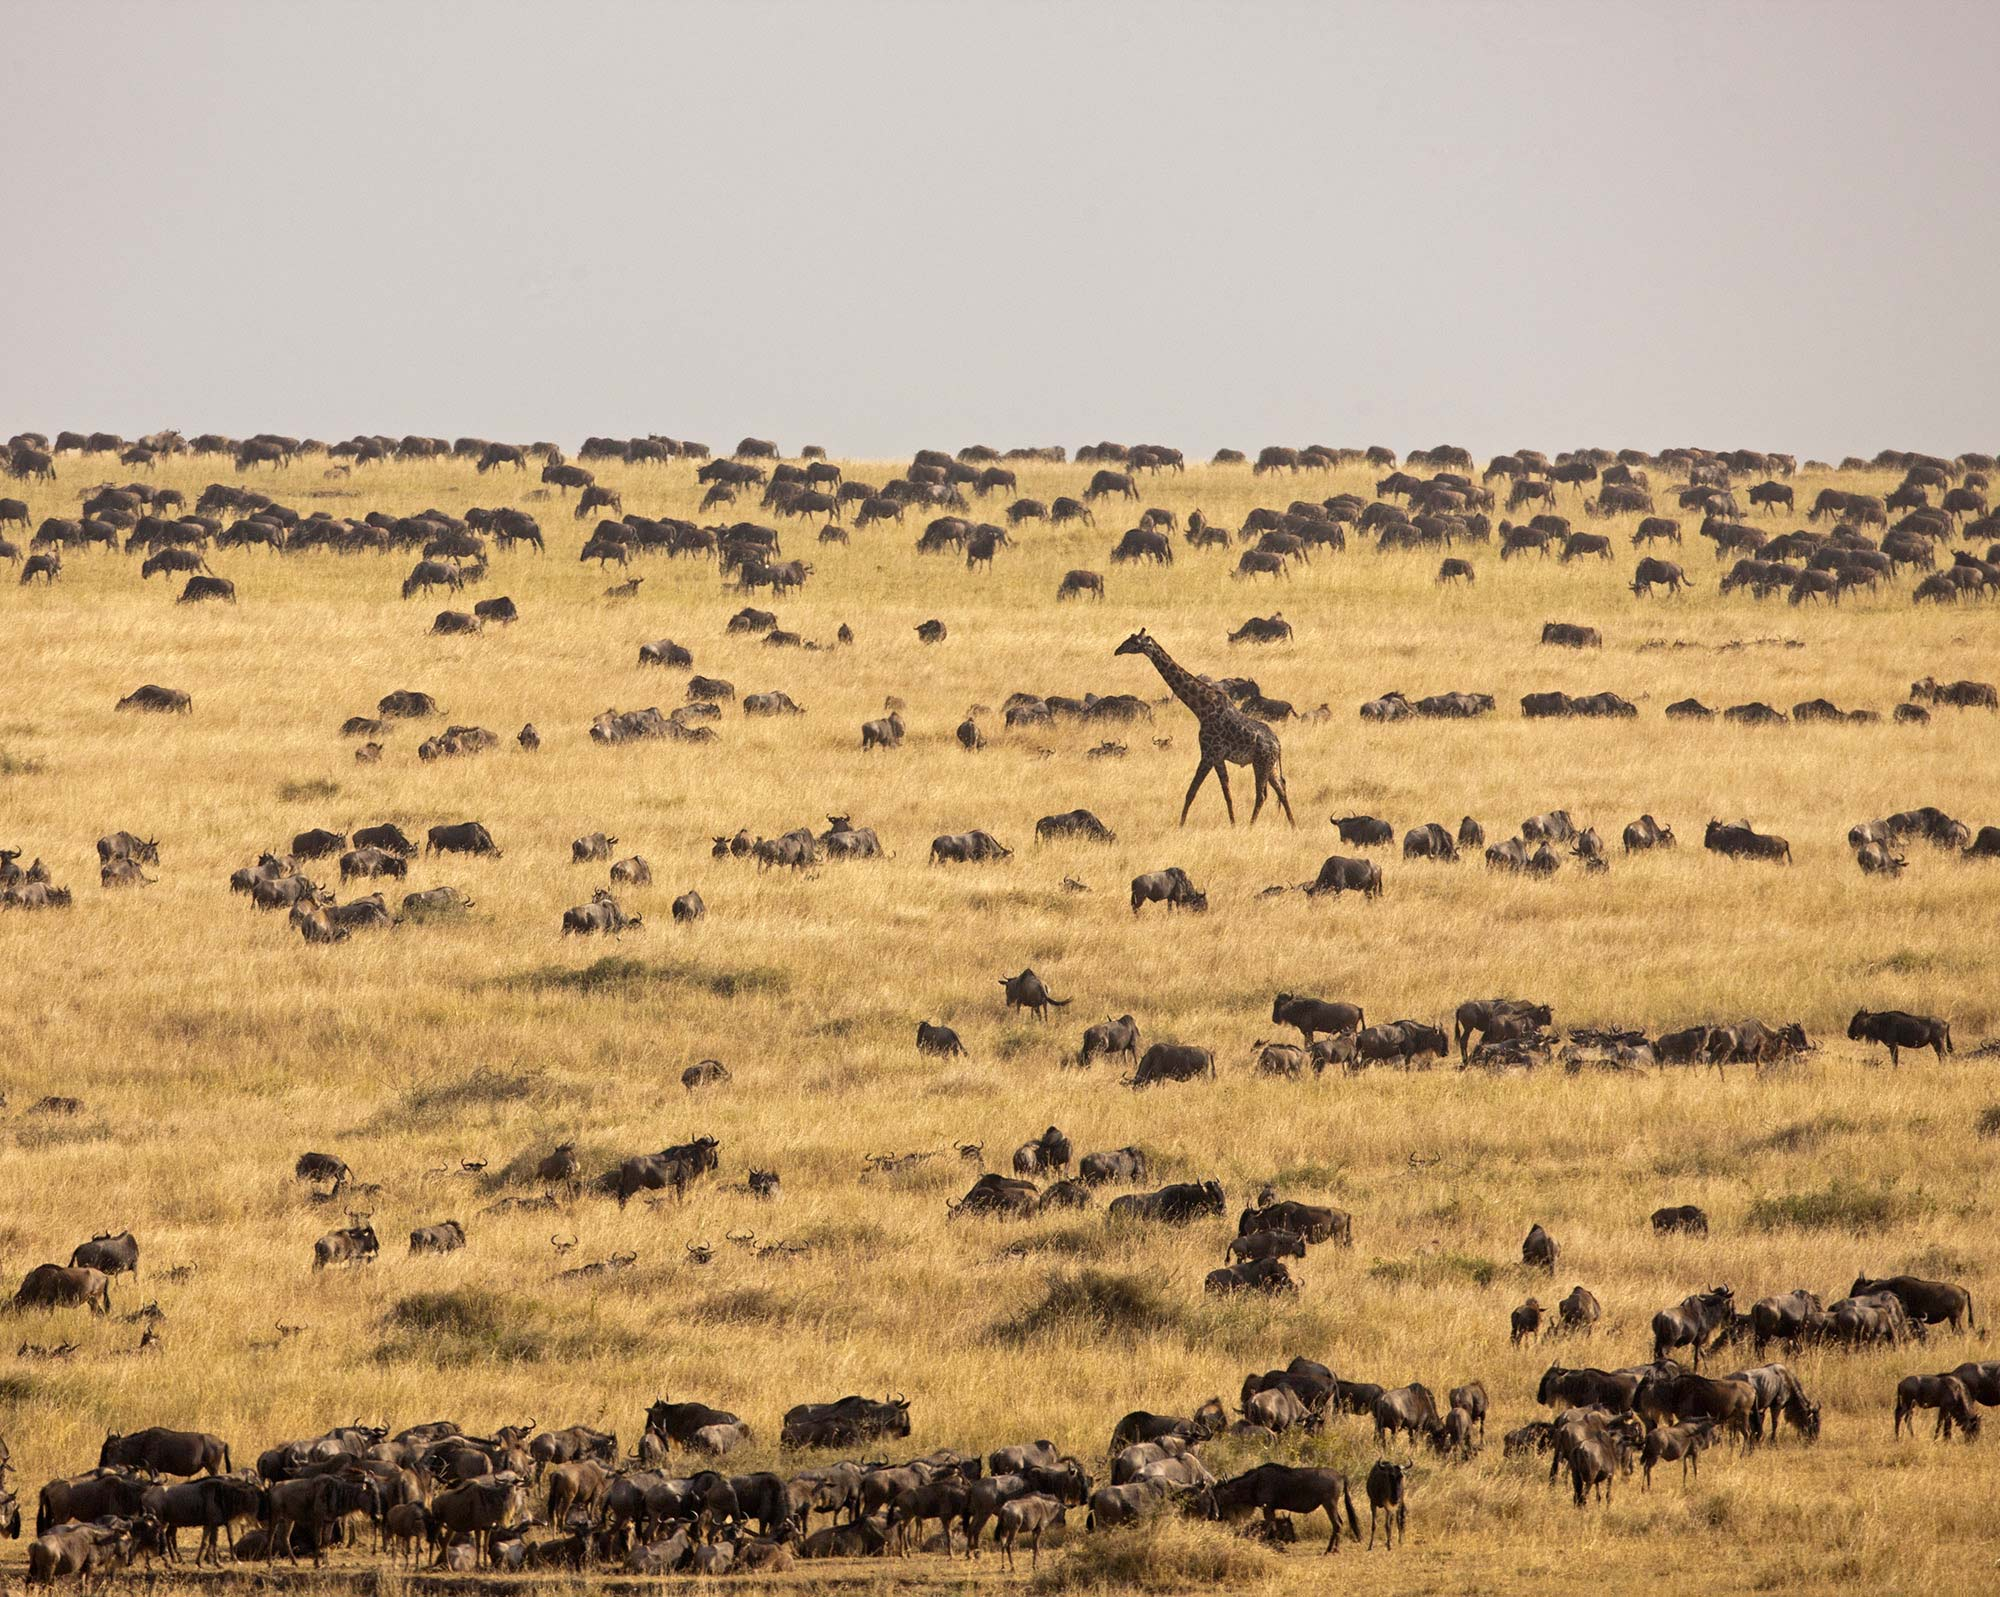 Serengeti giraffe and wildebeest